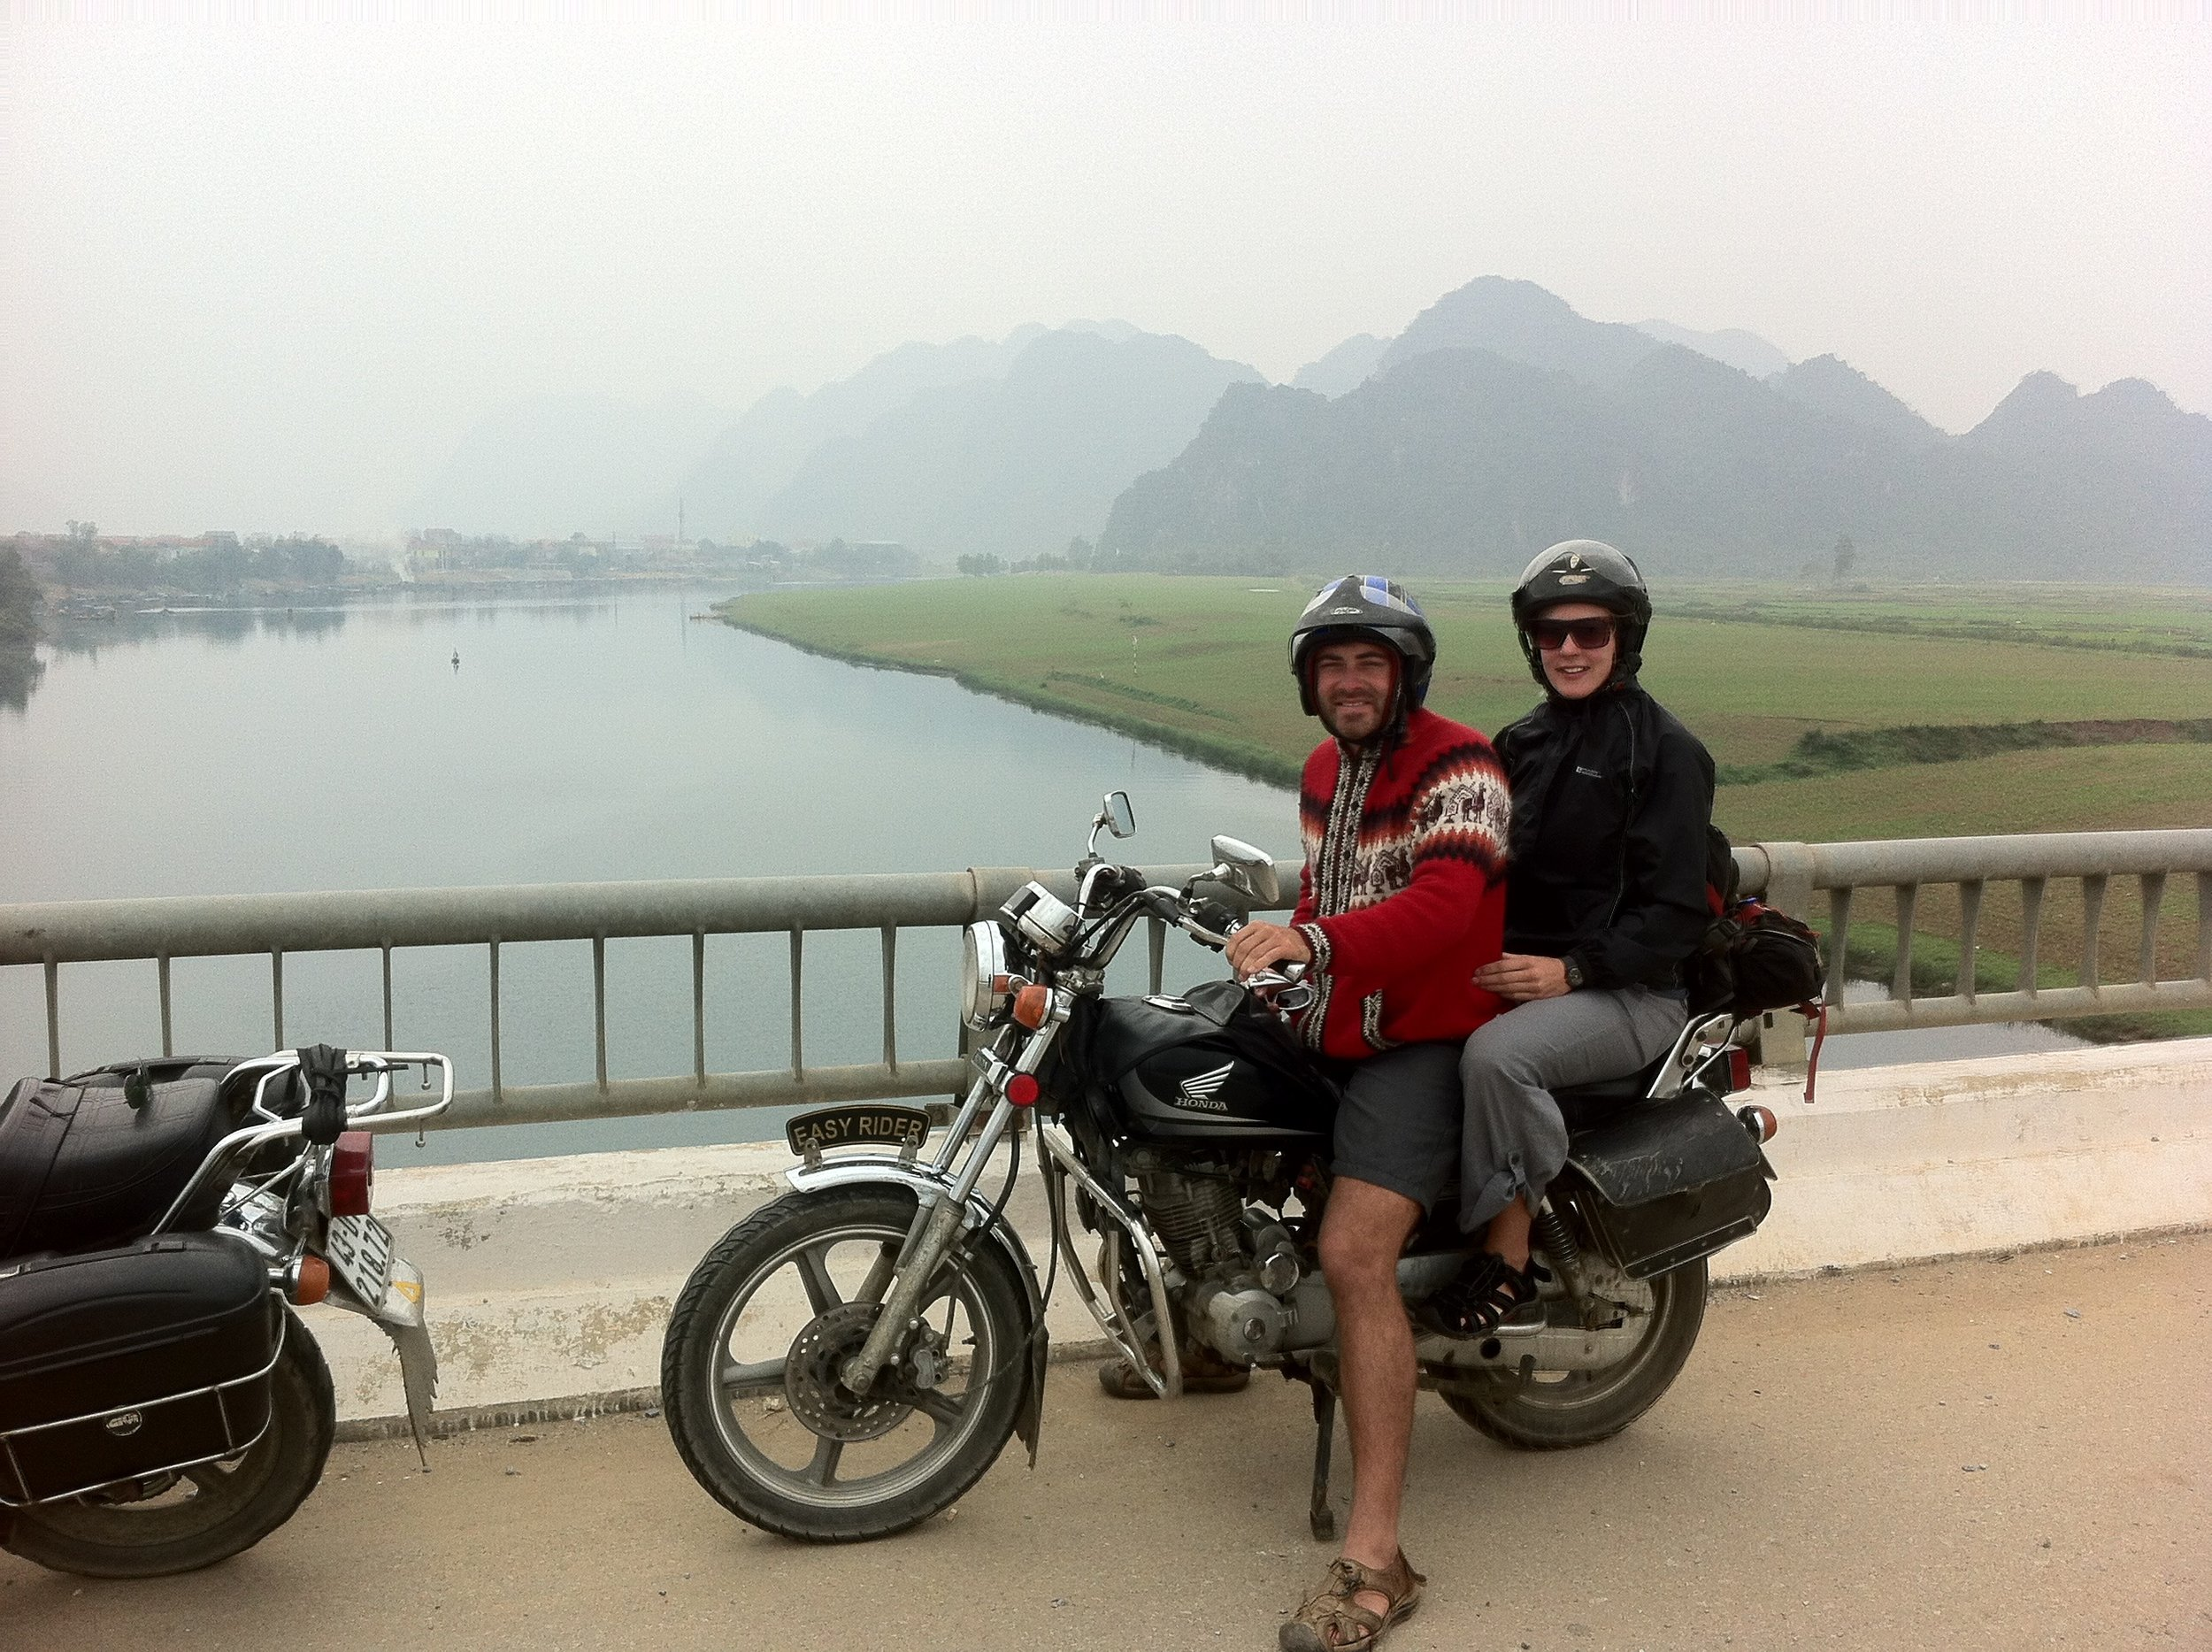 Adam & I on one of our many adventures... this time in Vietnam.